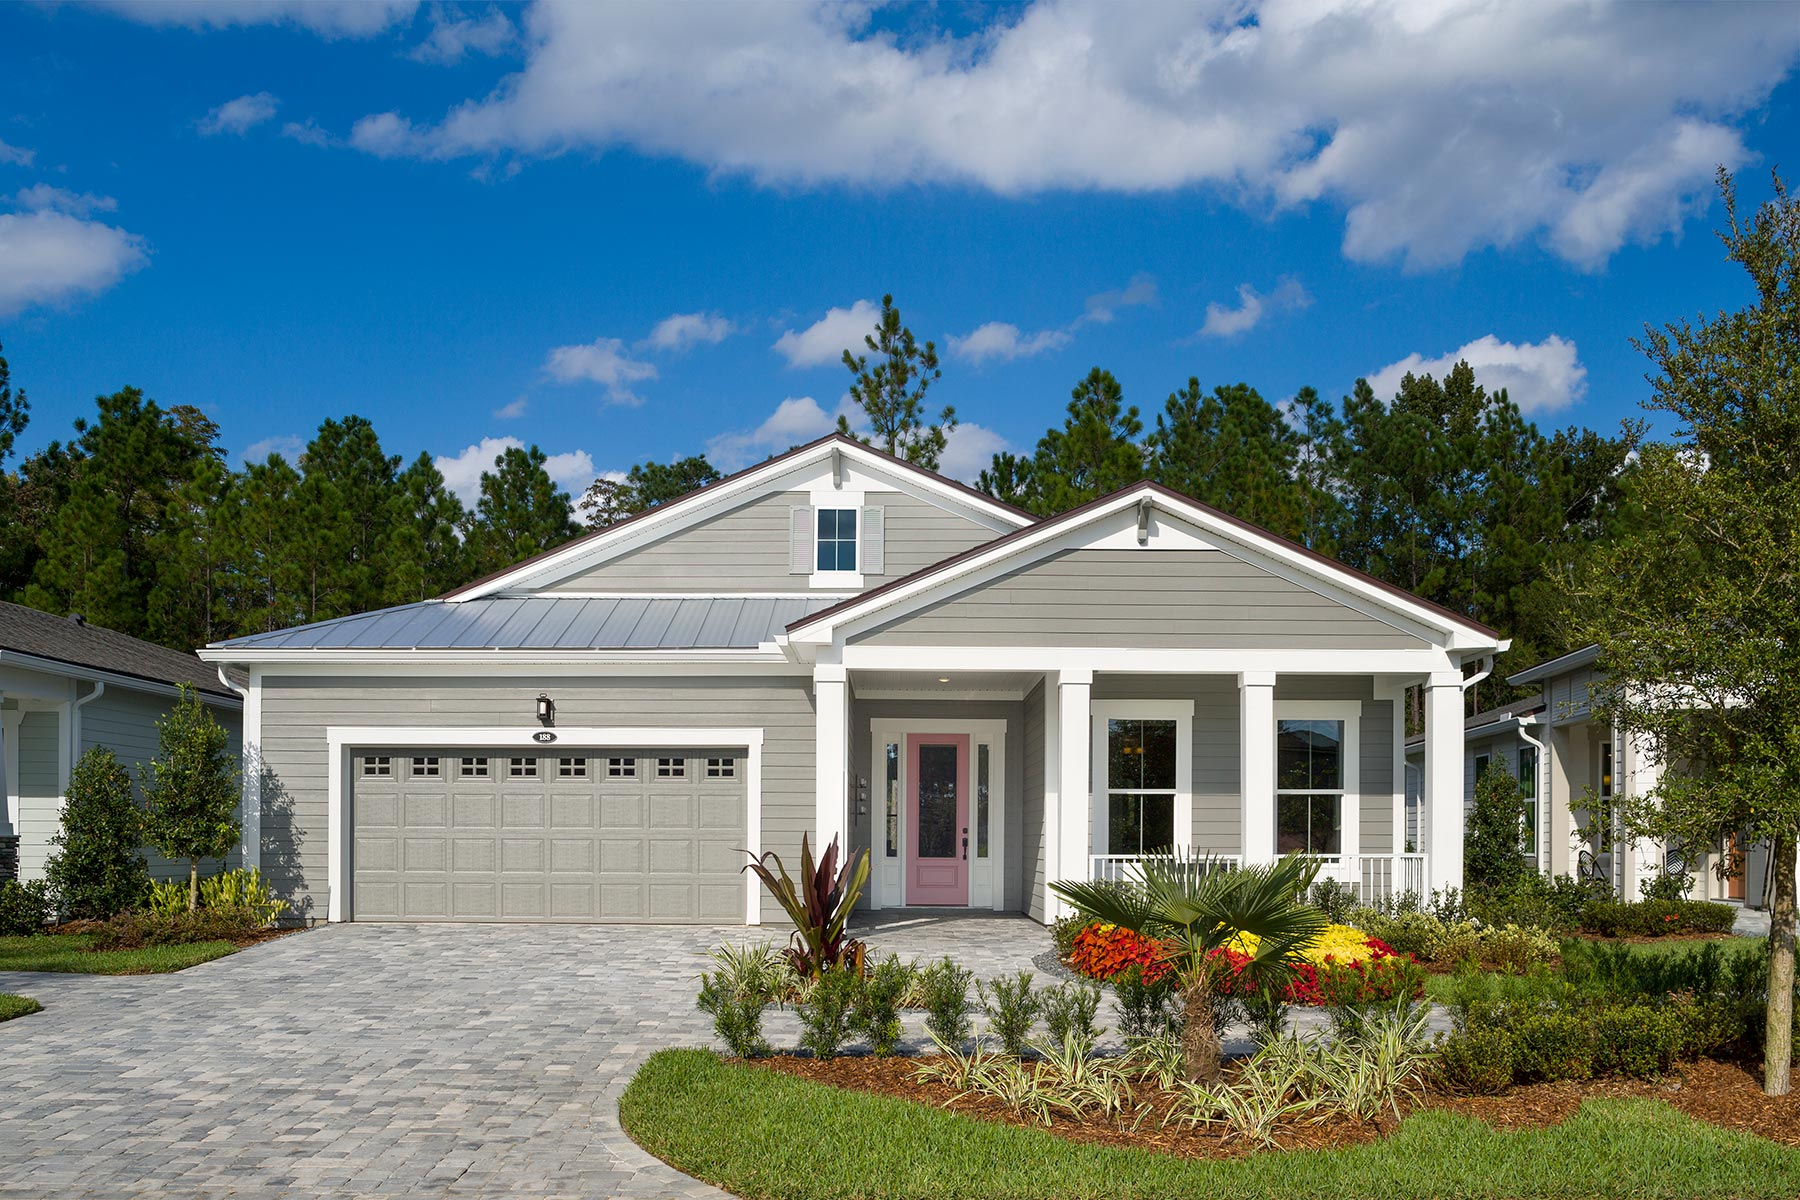 Bridge Plan Elevation Front at RiverTown - WaterSong in St. Johns Florida by Mattamy Homes